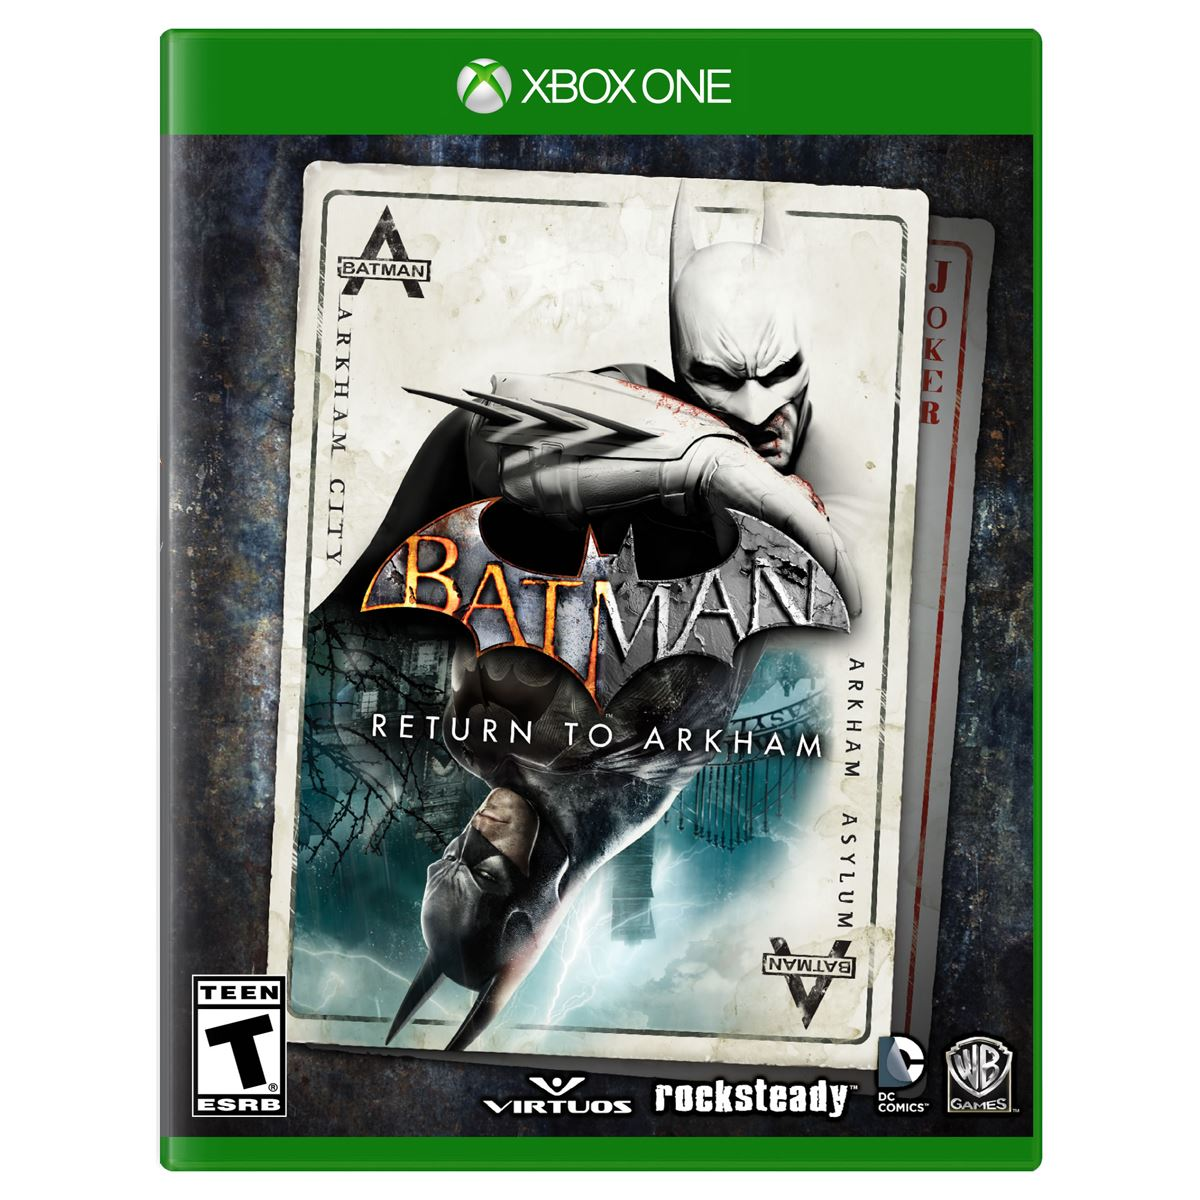 Xbox One Batman Return to Arkham